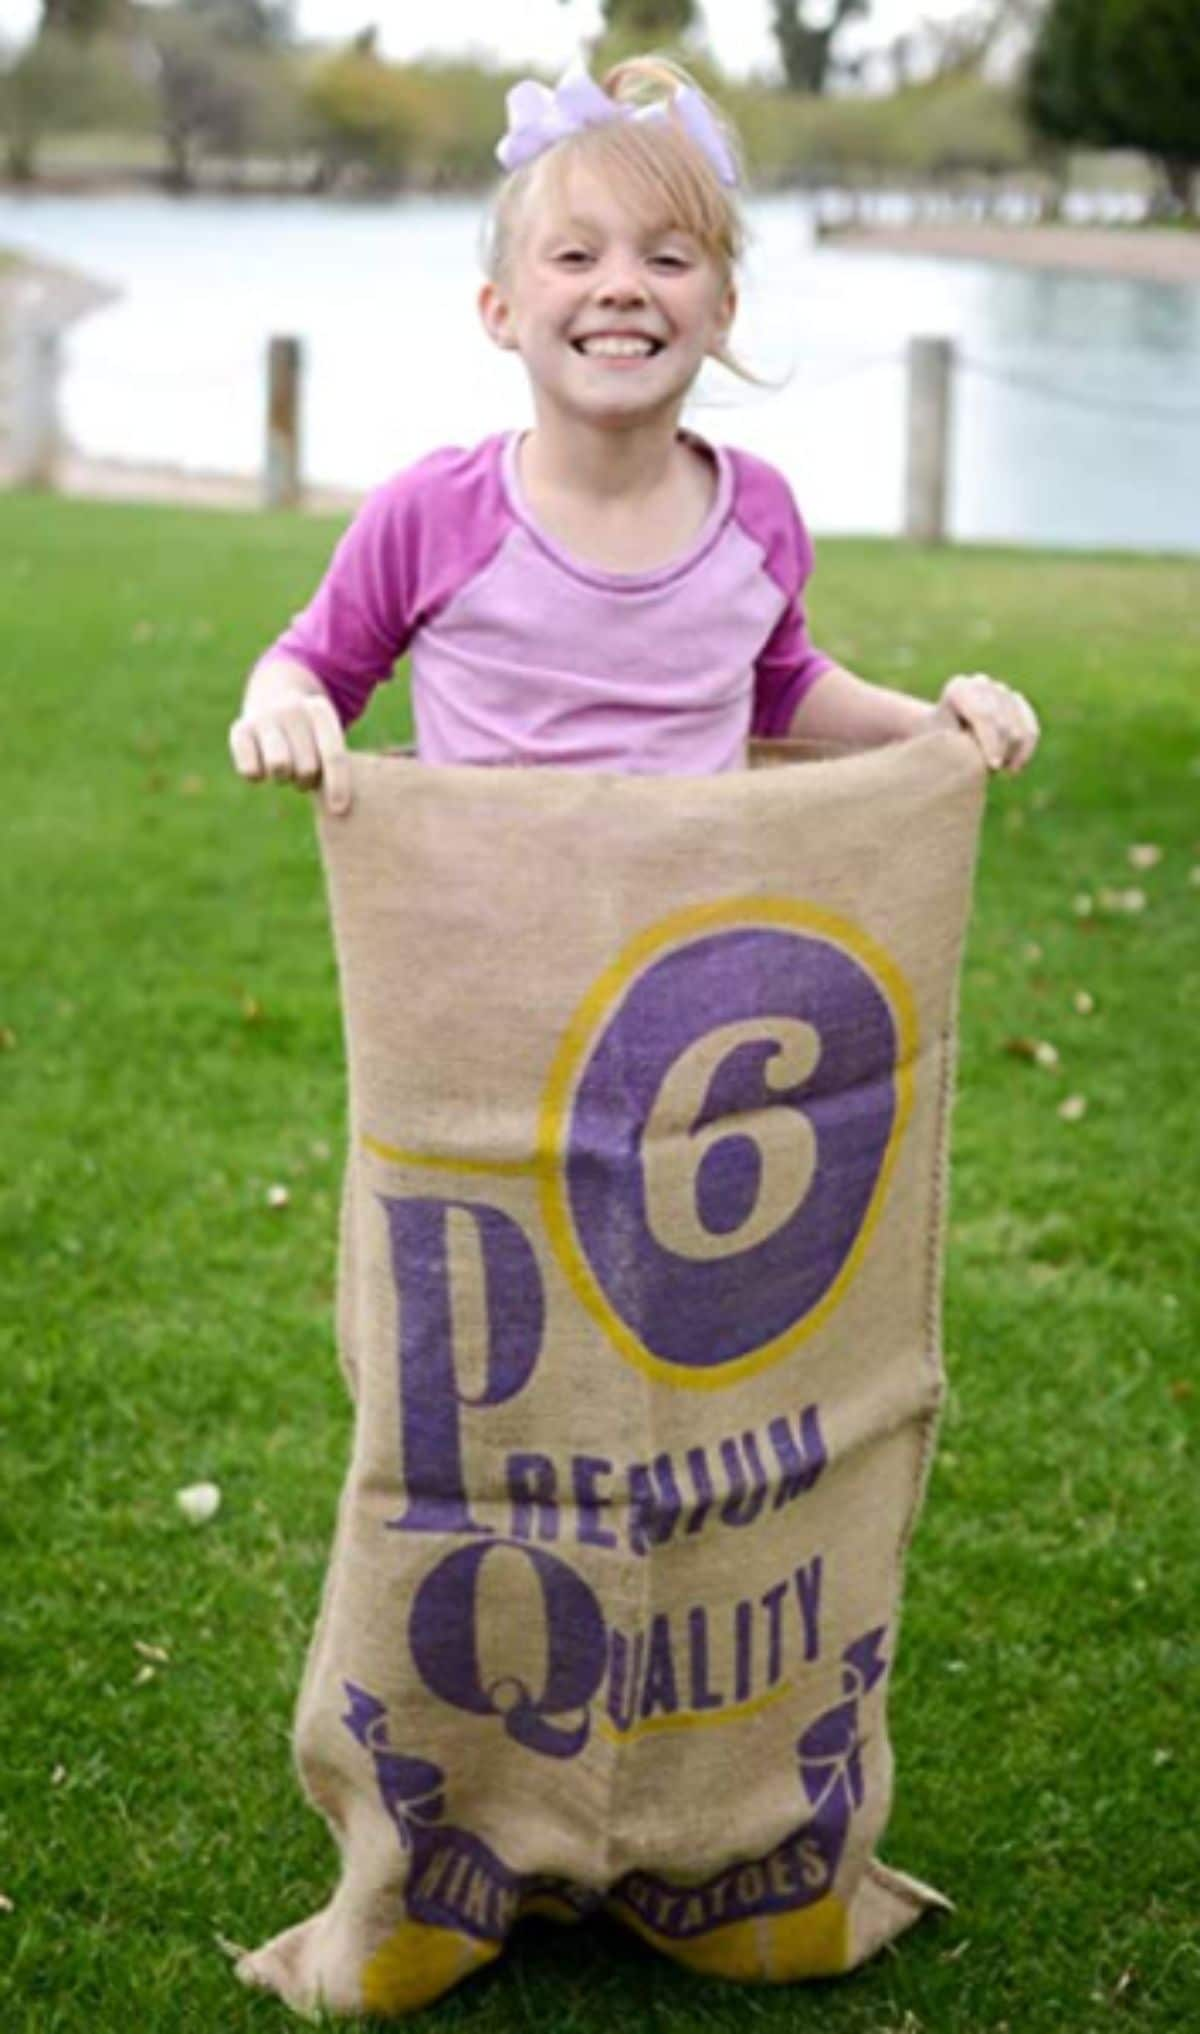 a girl stands in a potato sack on some grass